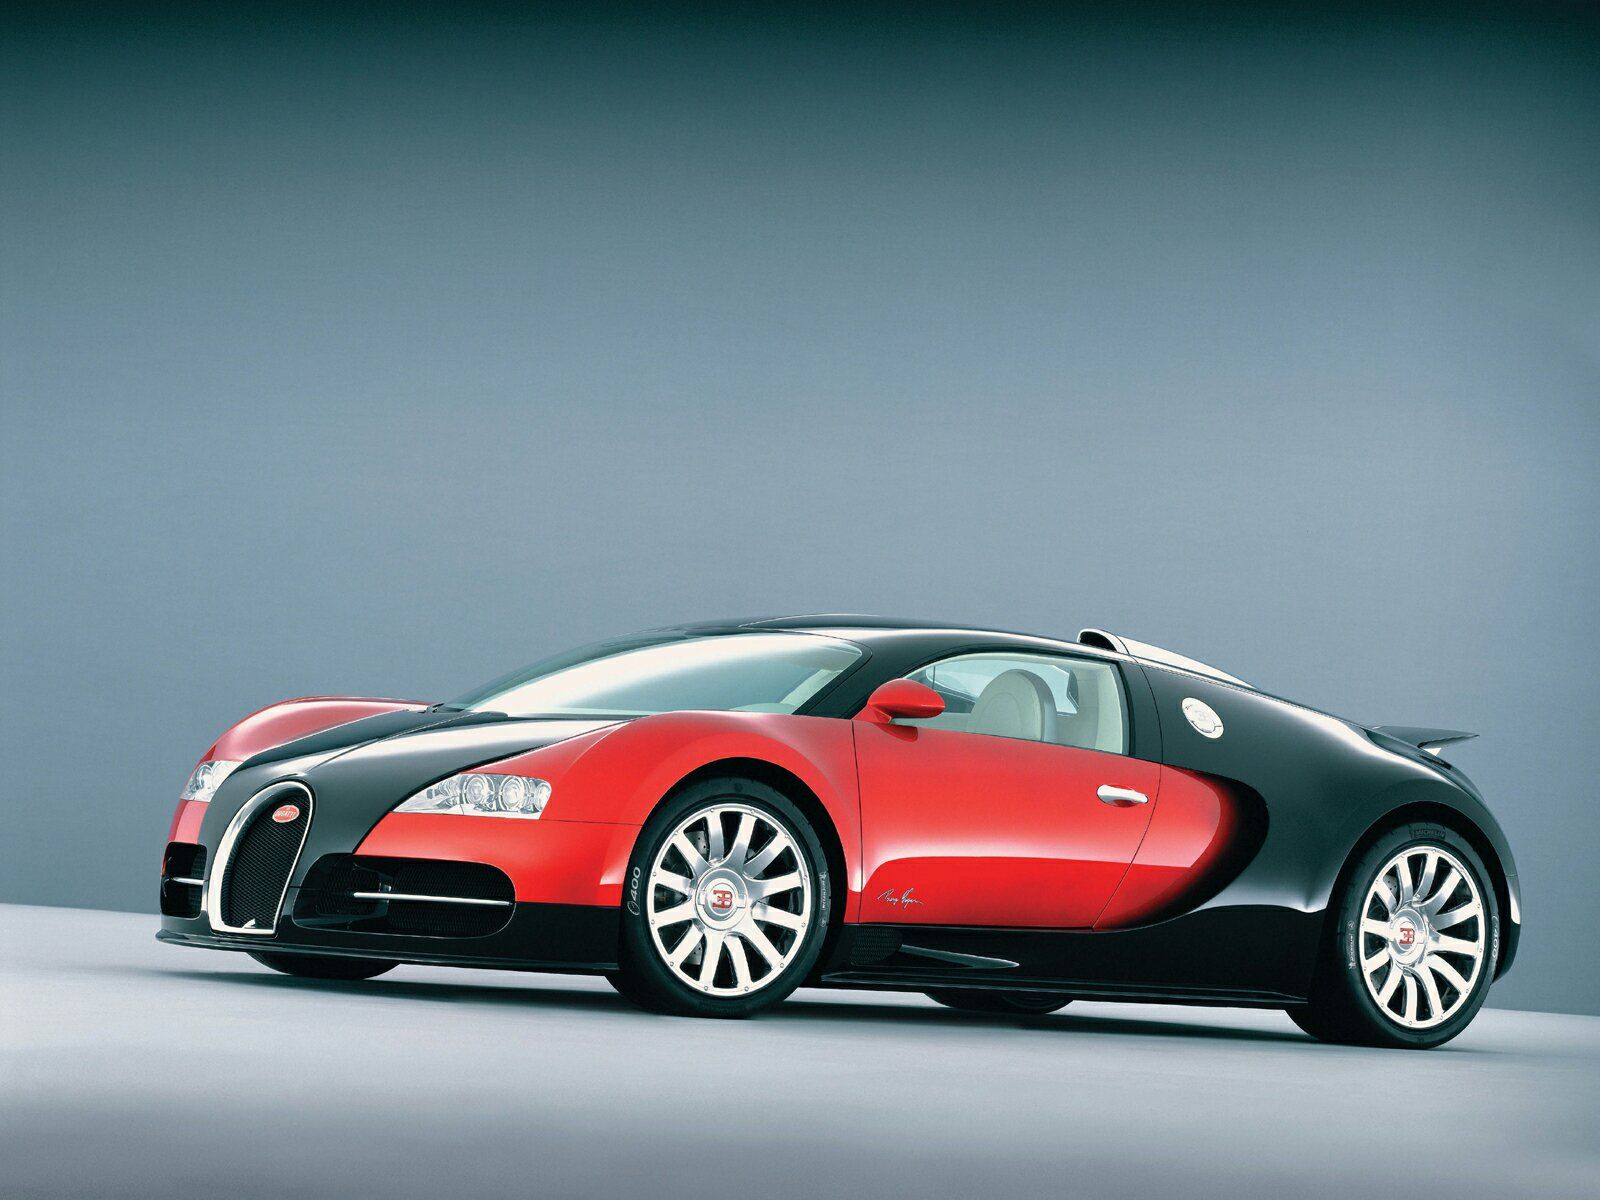 awesome bugatti veyron cool car wallpapers free car wallpaper - Bugatti Veyron Wallpaper